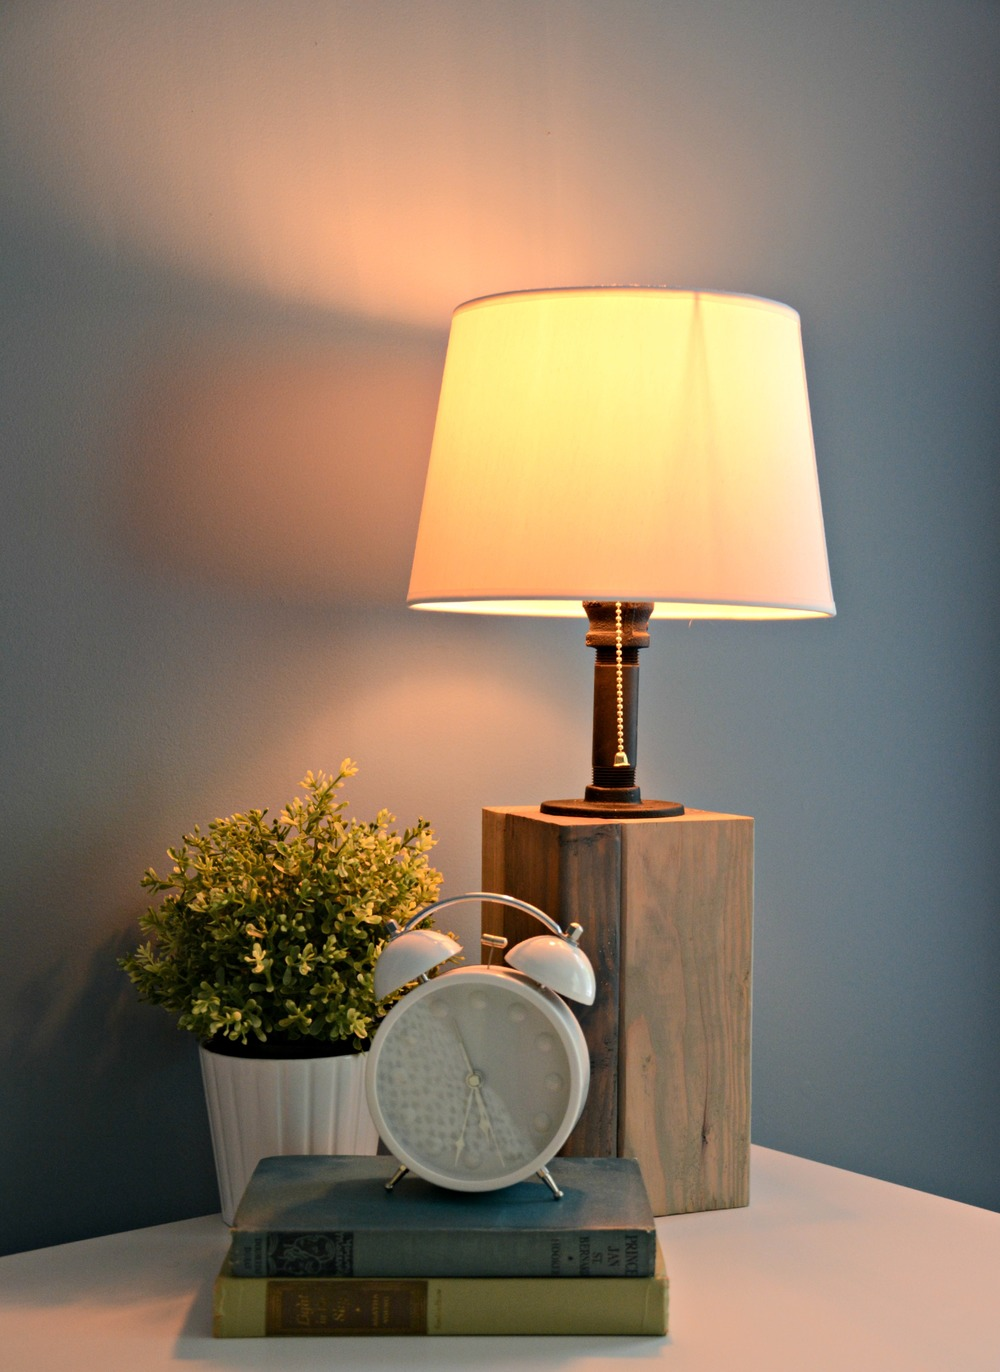 How to make your own lamp.